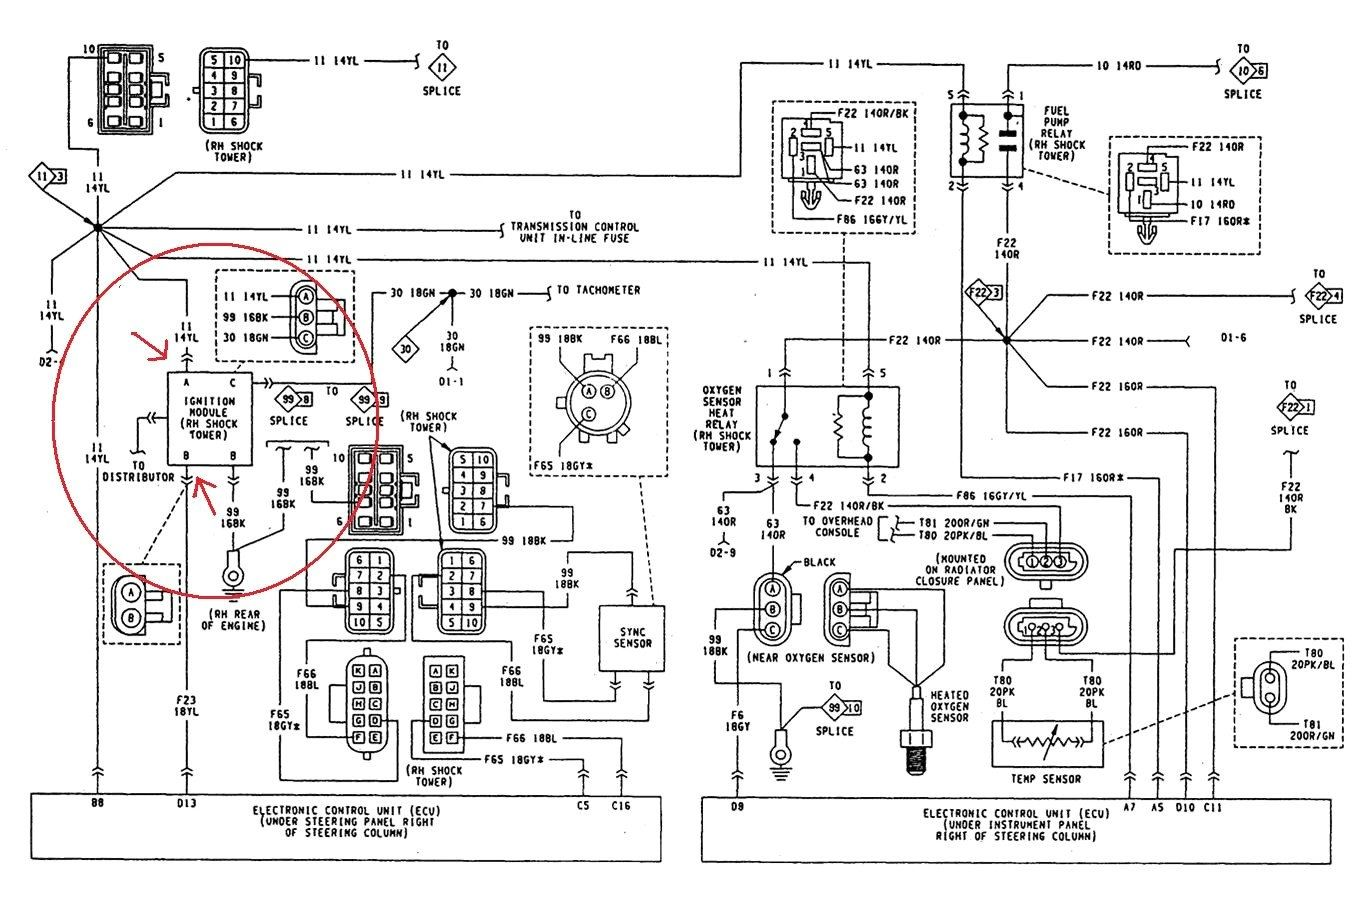 1990 jeep yj vacuum diagram wiring diagram name 1990 jeep cherokee vacuum diagram 1990 jeep vacuum diagram [ 1352 x 900 Pixel ]